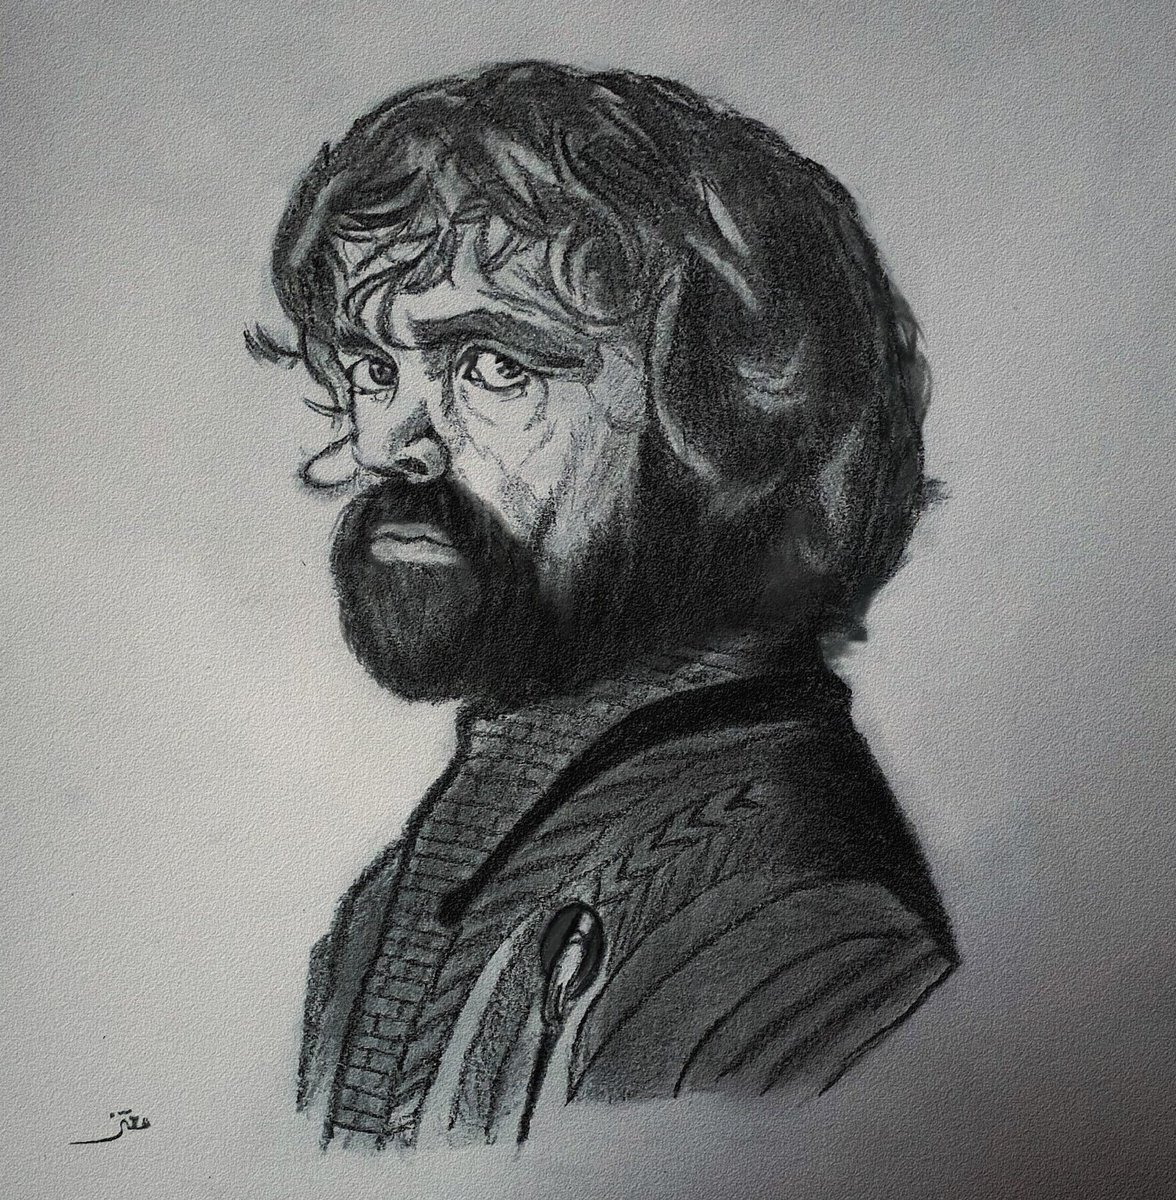 """""""A wise man once said that you should never believe a thing simply because you want to believe it."""" ~ Tyrion Lannister  #GameOfThrones  <br>http://pic.twitter.com/BVaBm2hodD"""